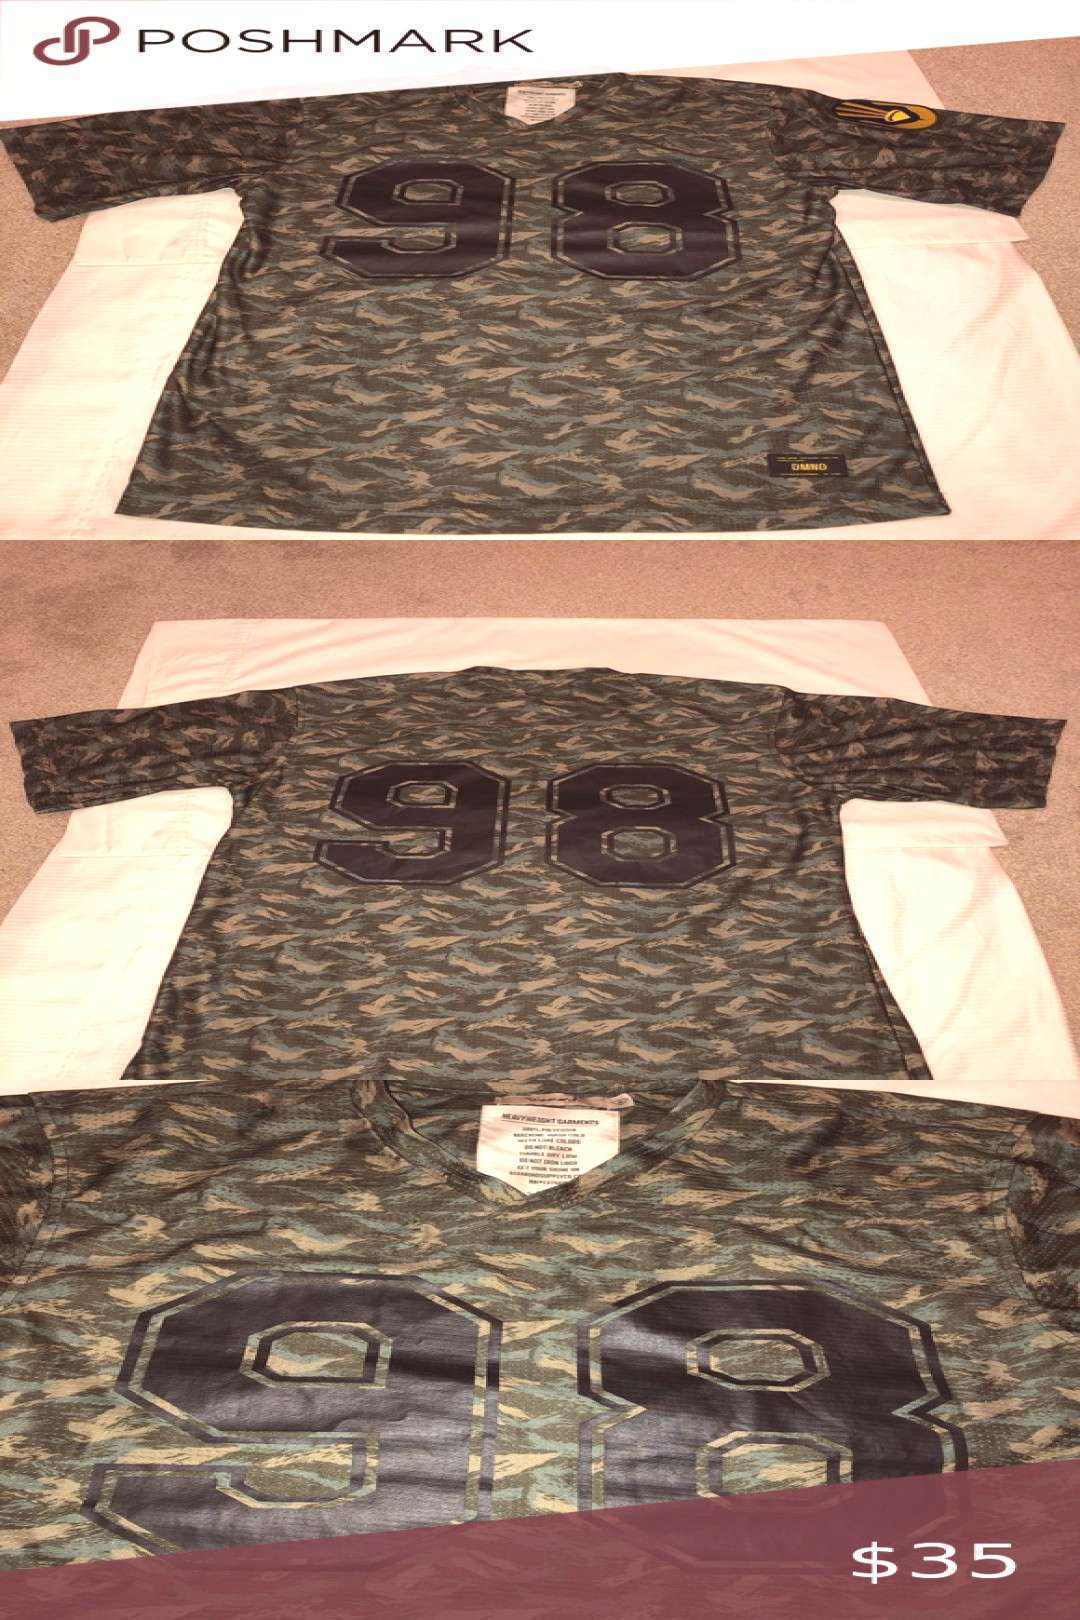 Special edition Diamond supply camo style jersey! This is a special edition Diamond supply Camo je